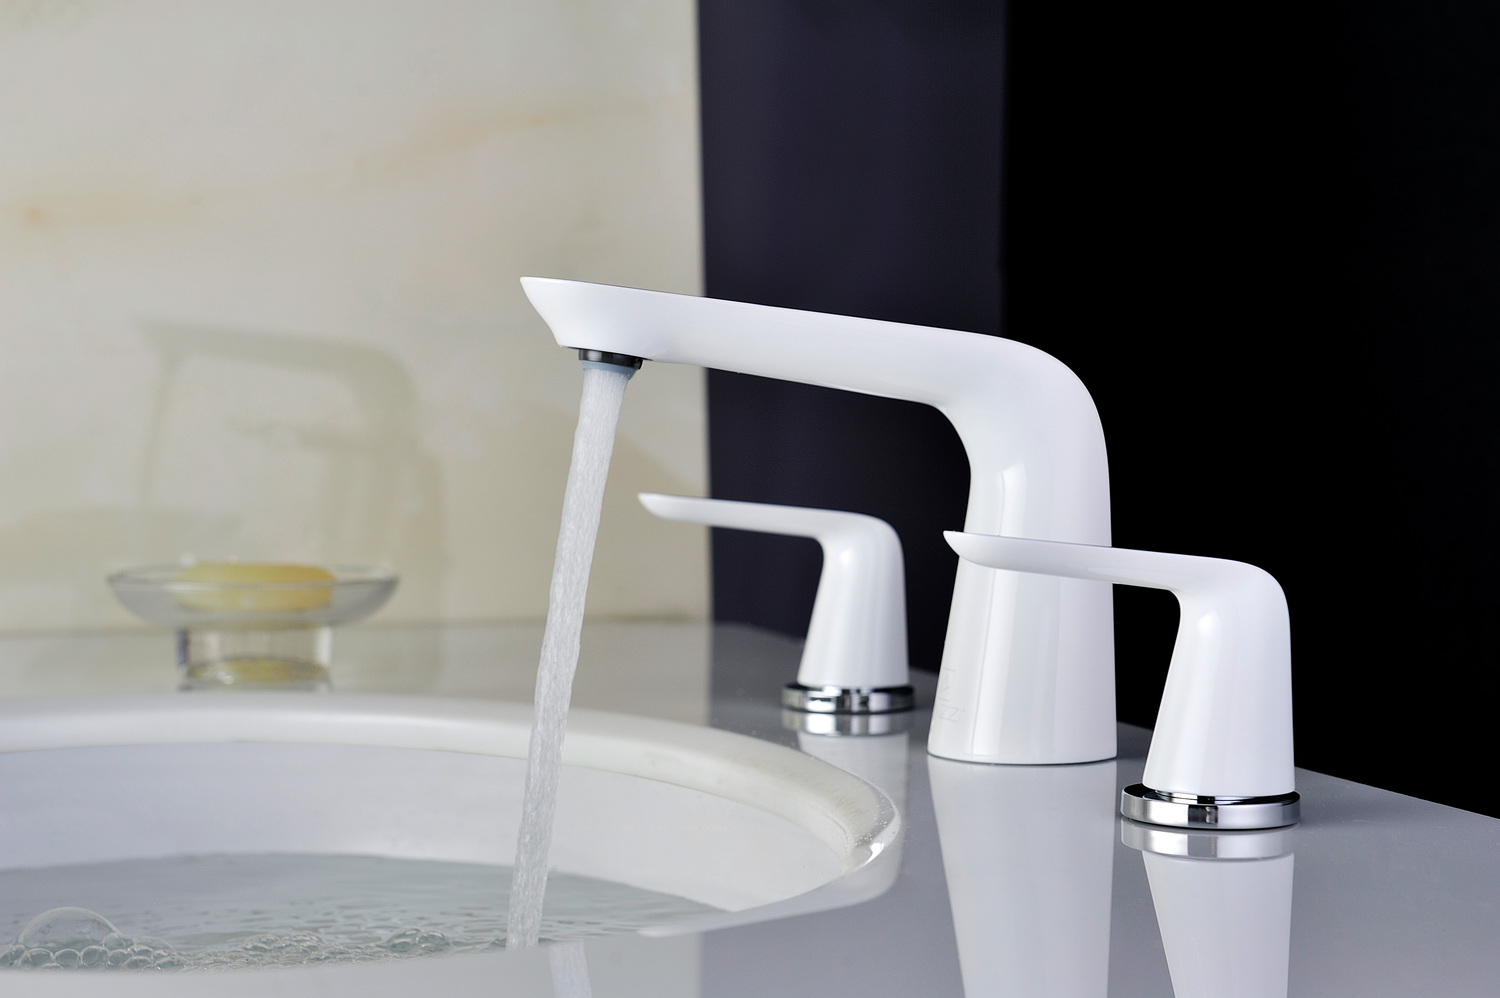 Two Le Bathroom Sink Faucet - 4k Wiki Wallpapers 2018